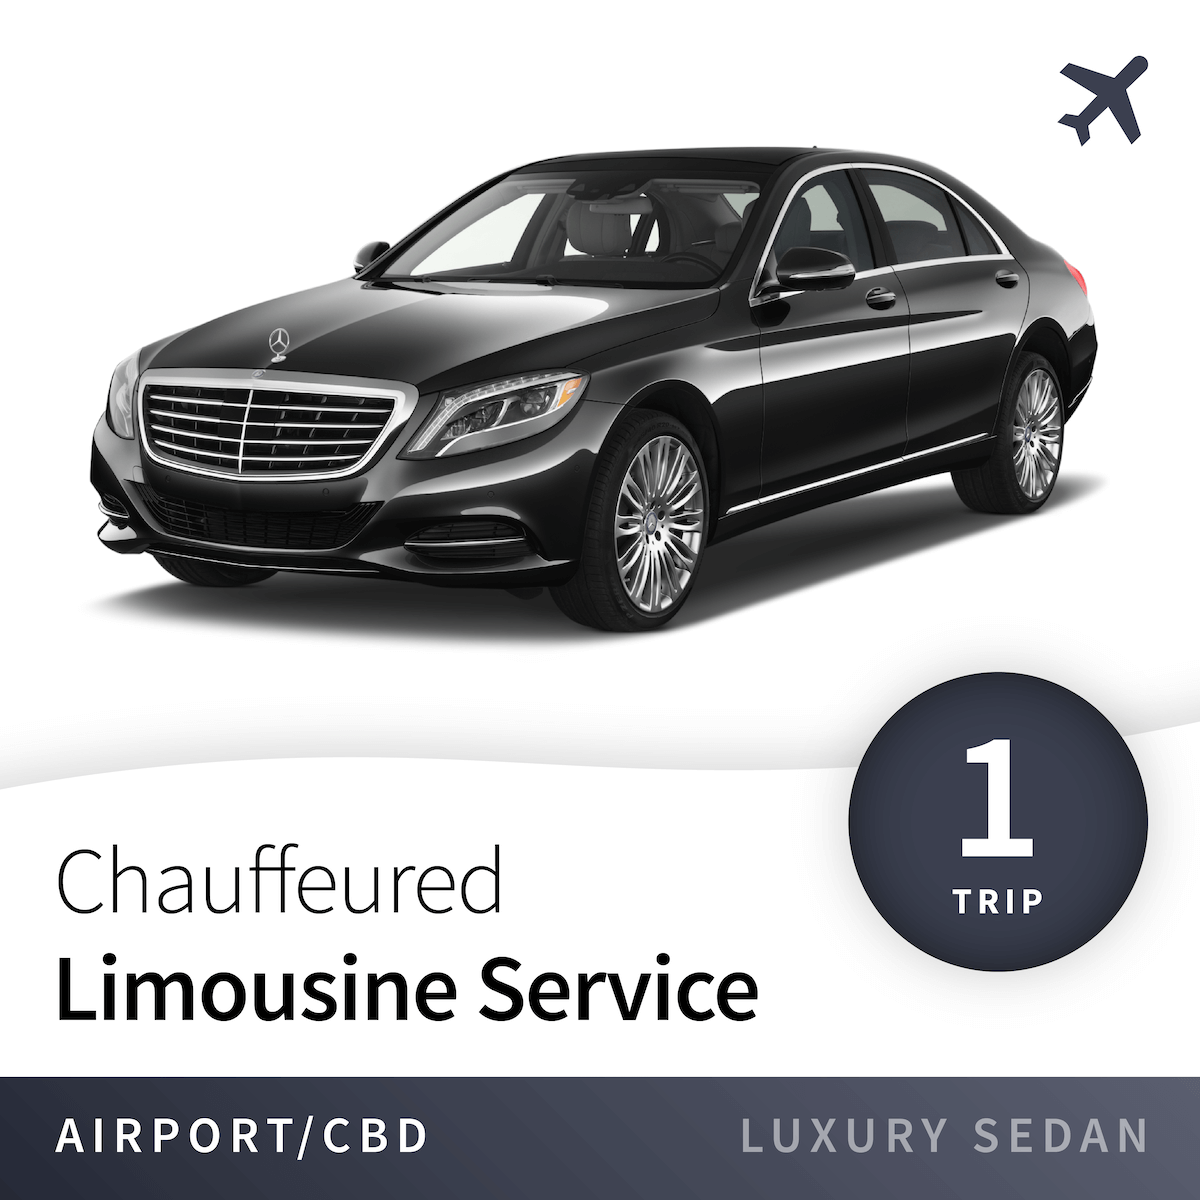 Chauffeured Limousine Service - Airport - Luxury Sedan (1 Trip) 10